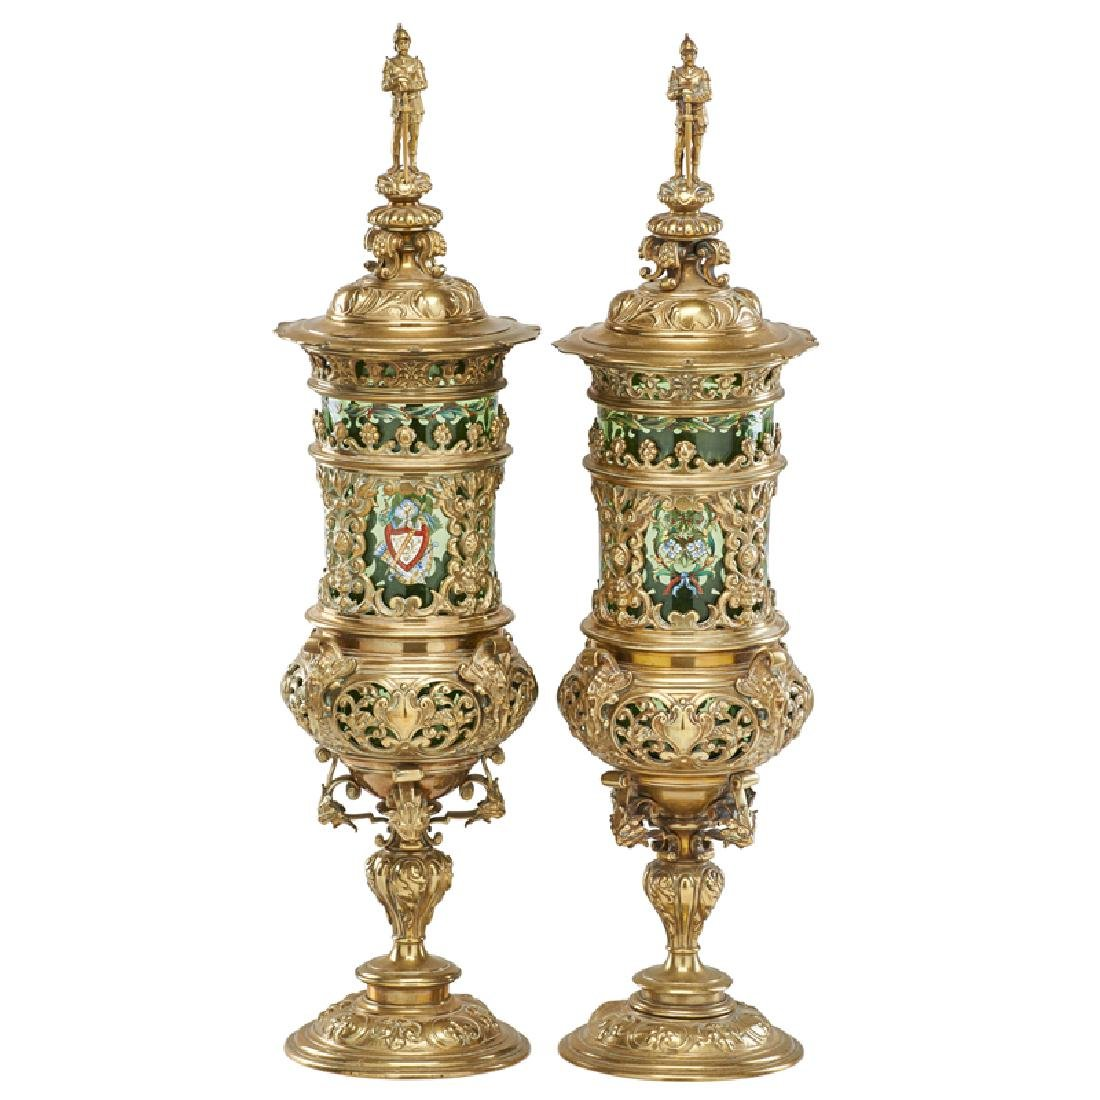 PAIR OF GILT BRONZE AND ENAMELED GLASS POKALS